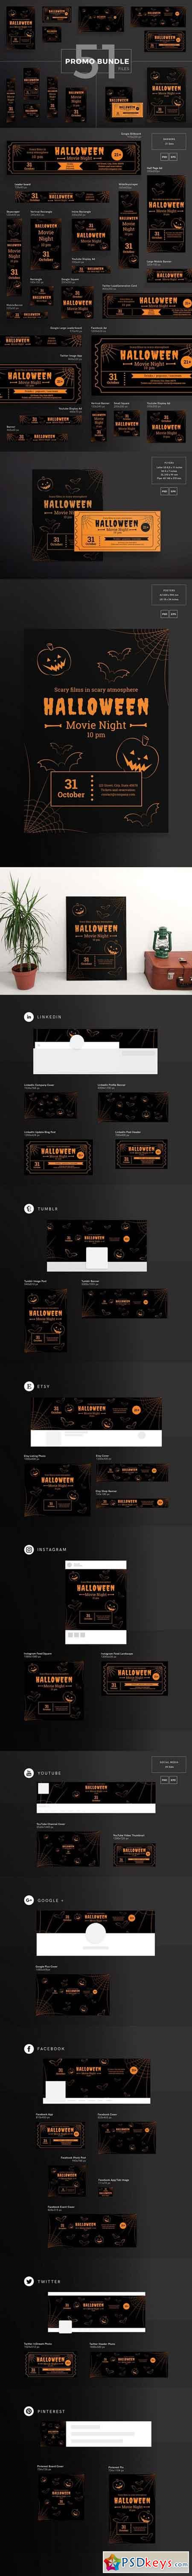 Promo Bundle Halloween 1819314